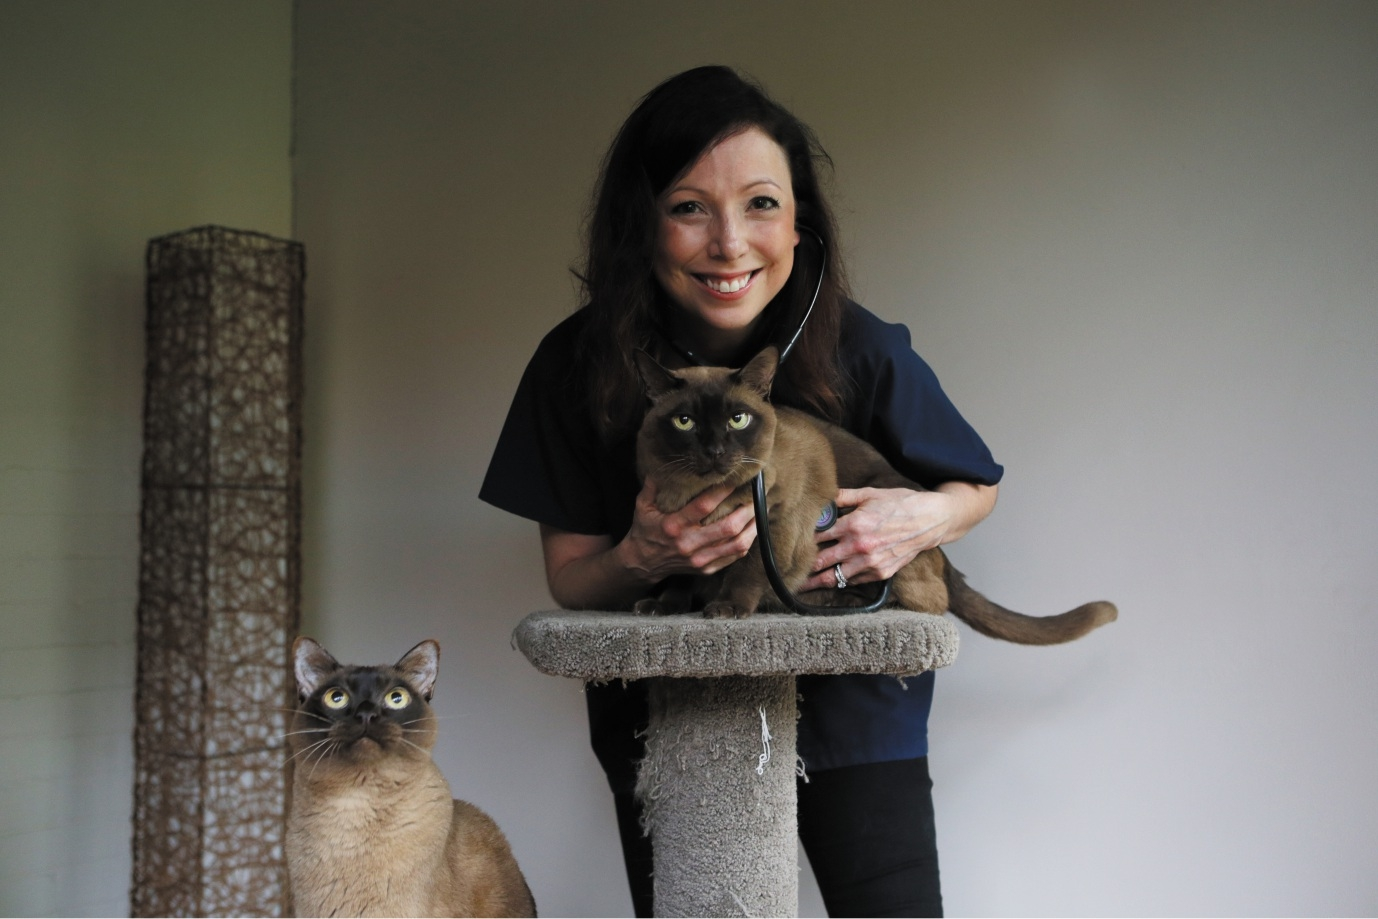 Dr Martine van Boeijen with her cats Eddie (being held) and Rollie.